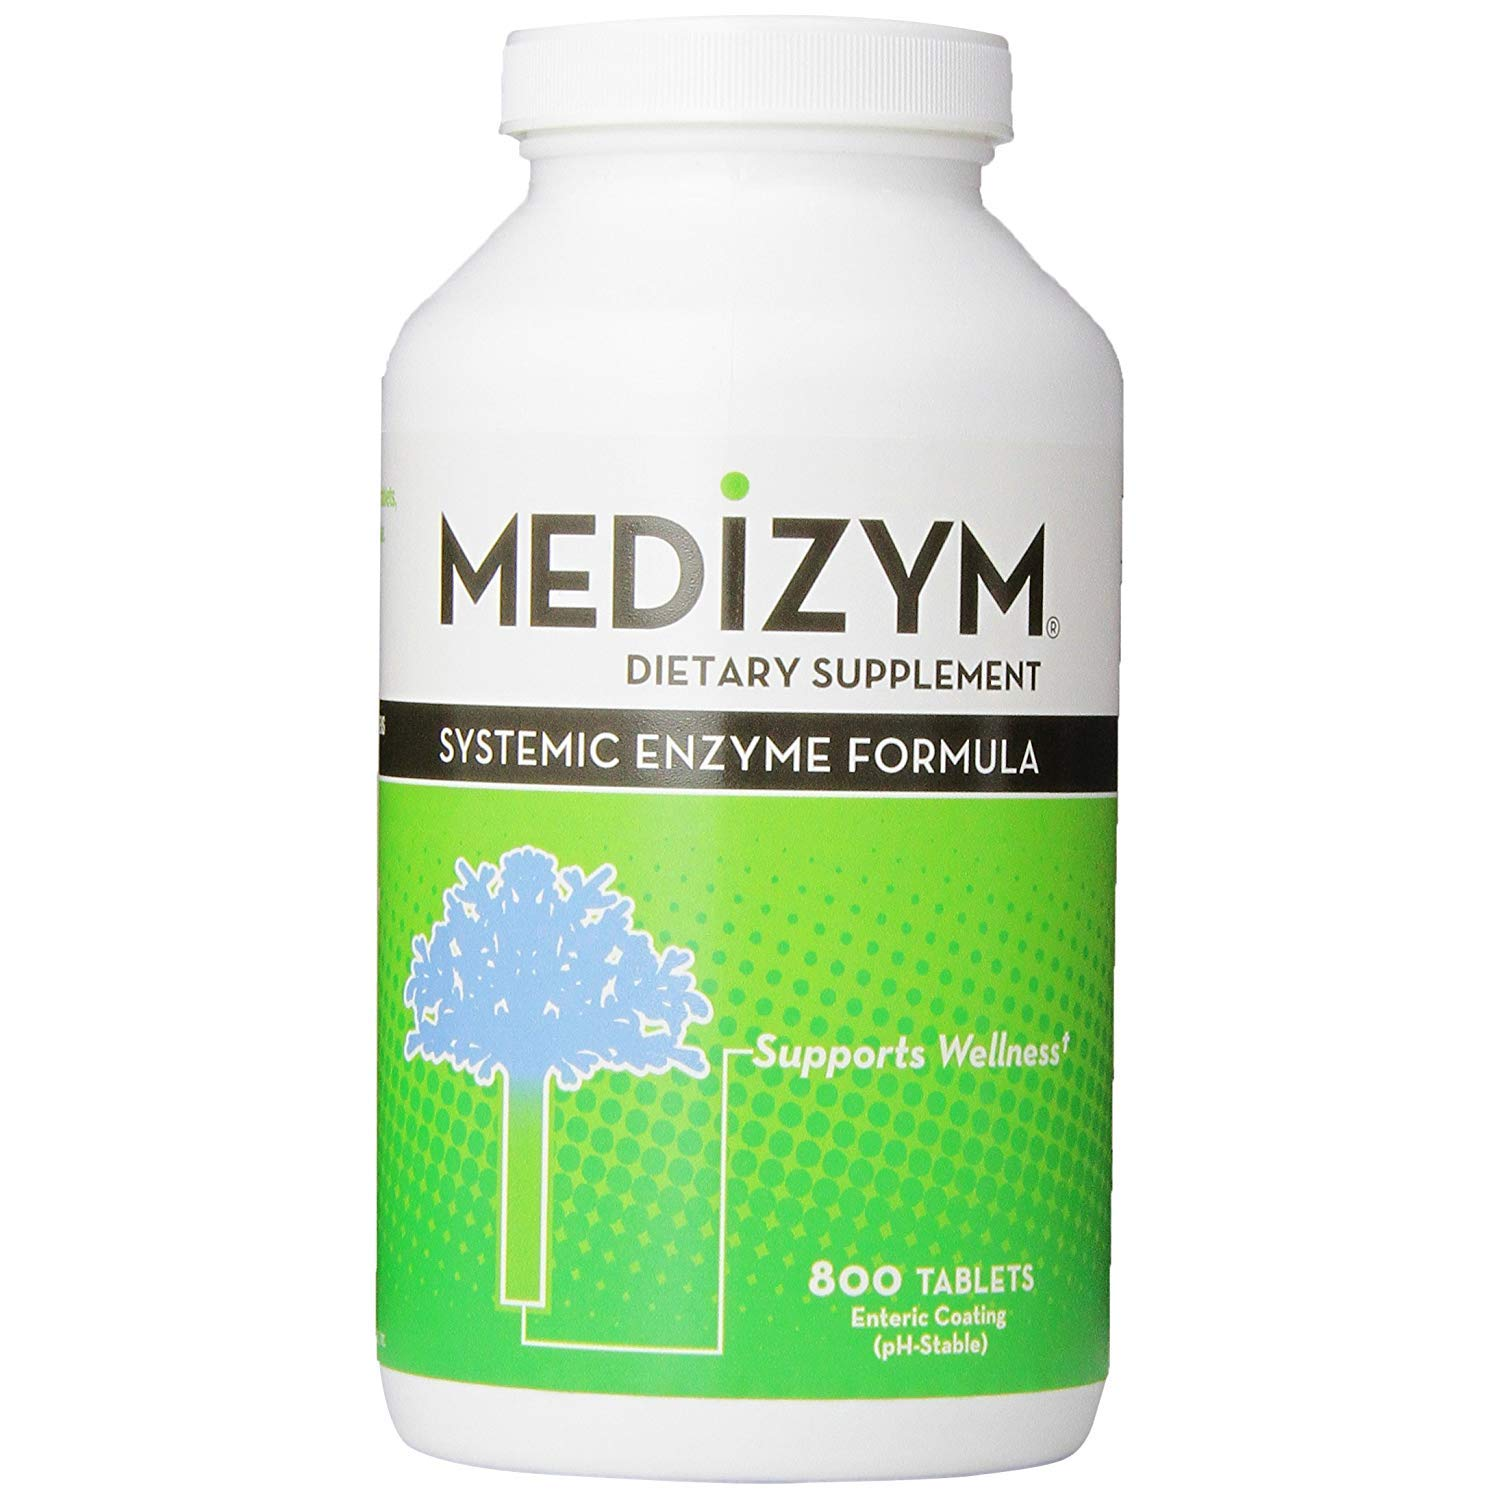 Amazon.com: Naturally Vitaminas medizym sistémico enzima ...